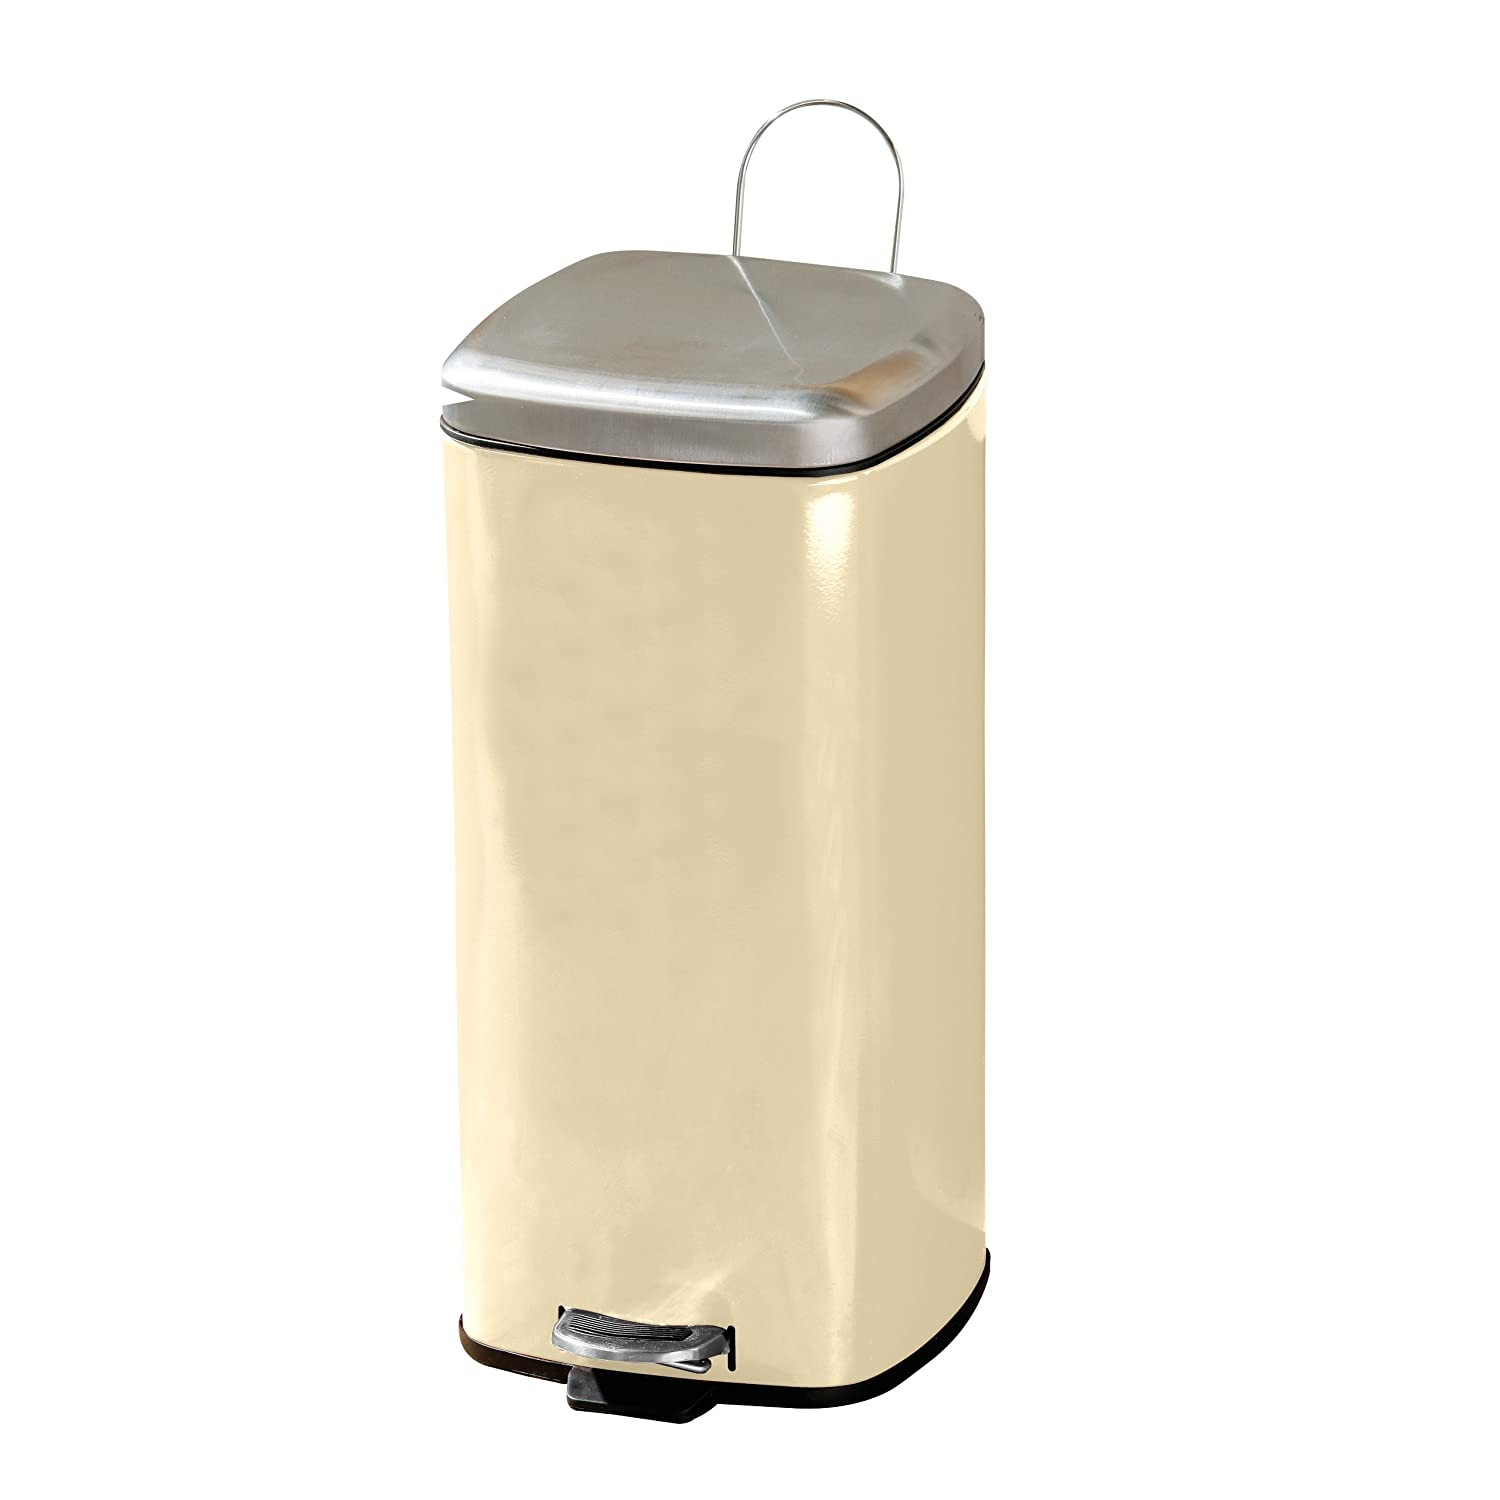 Premier Housewares Square Pedal Bin with Mirror Finish Stainless ...